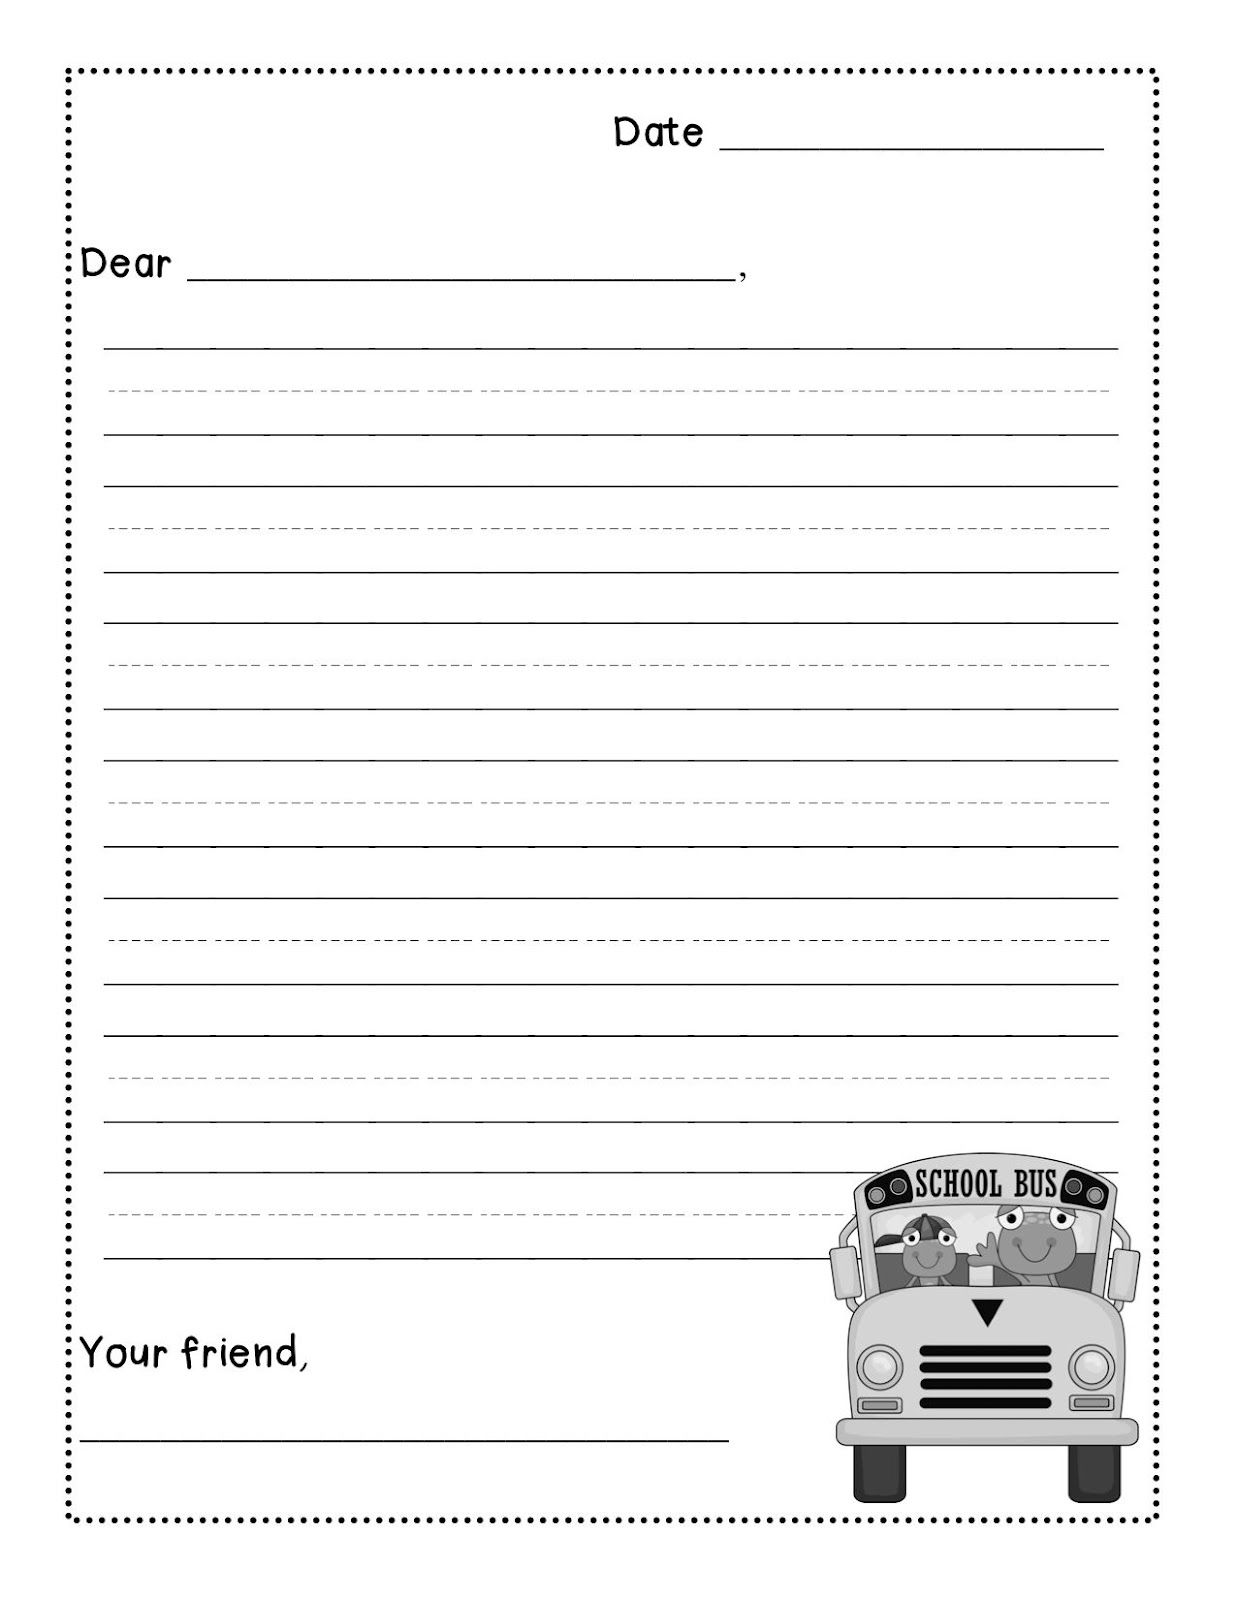 templates for writing letters